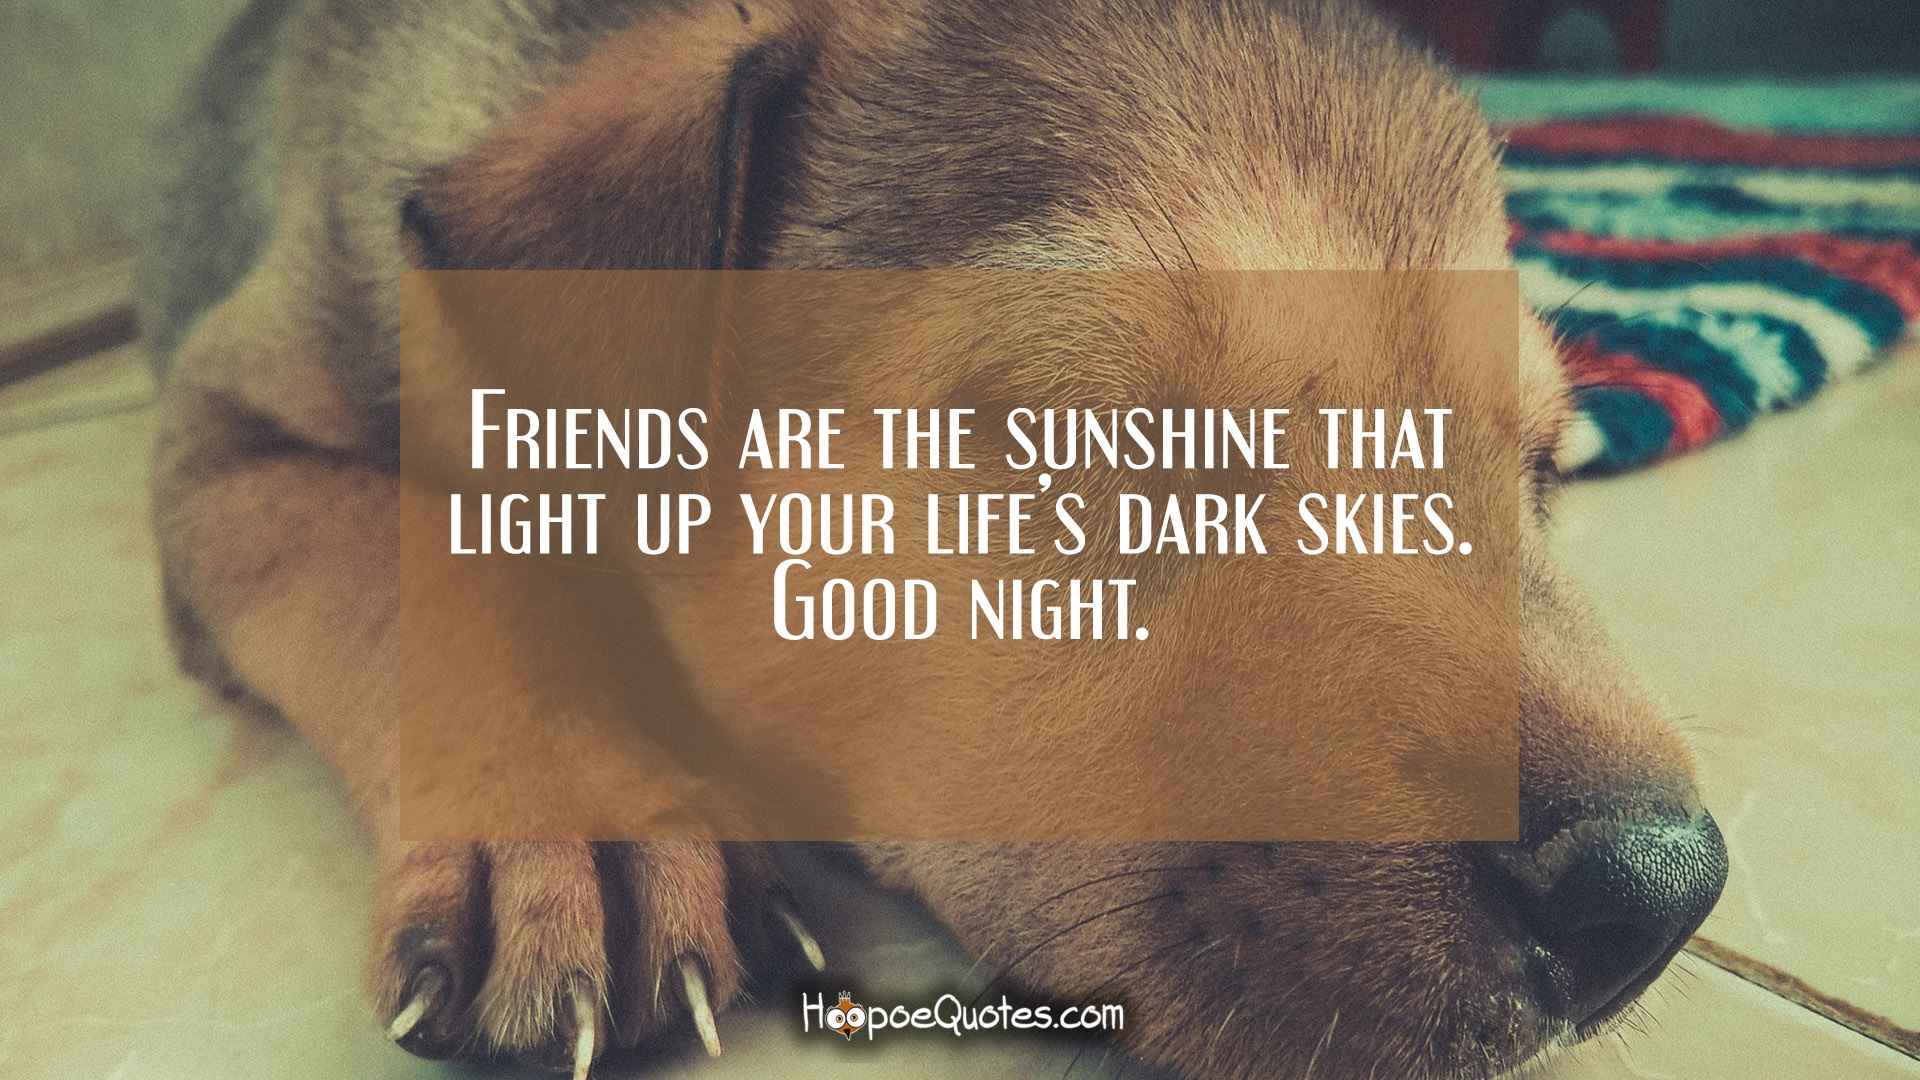 220+ HD Images] Good Night Messages - Unique Wishes, Quotes